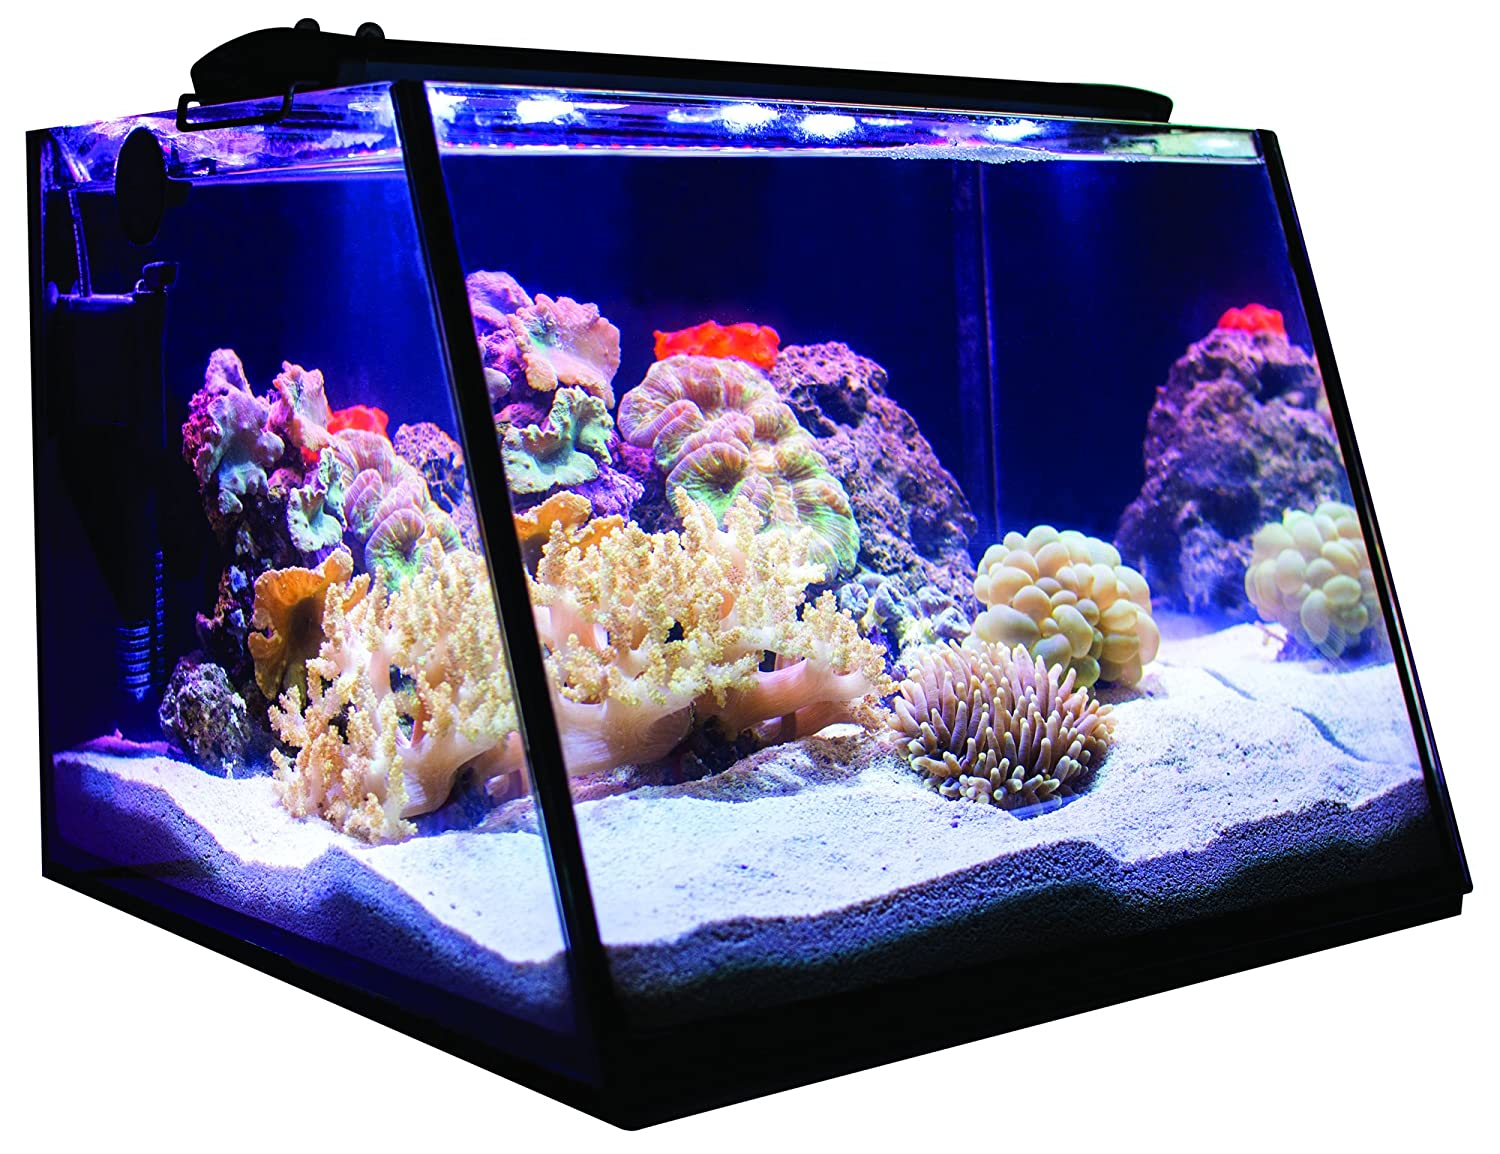 Lifegard Aquatics R800204 Full-View 5 Gallon Aquarium with LED Light Built-in Back Filter